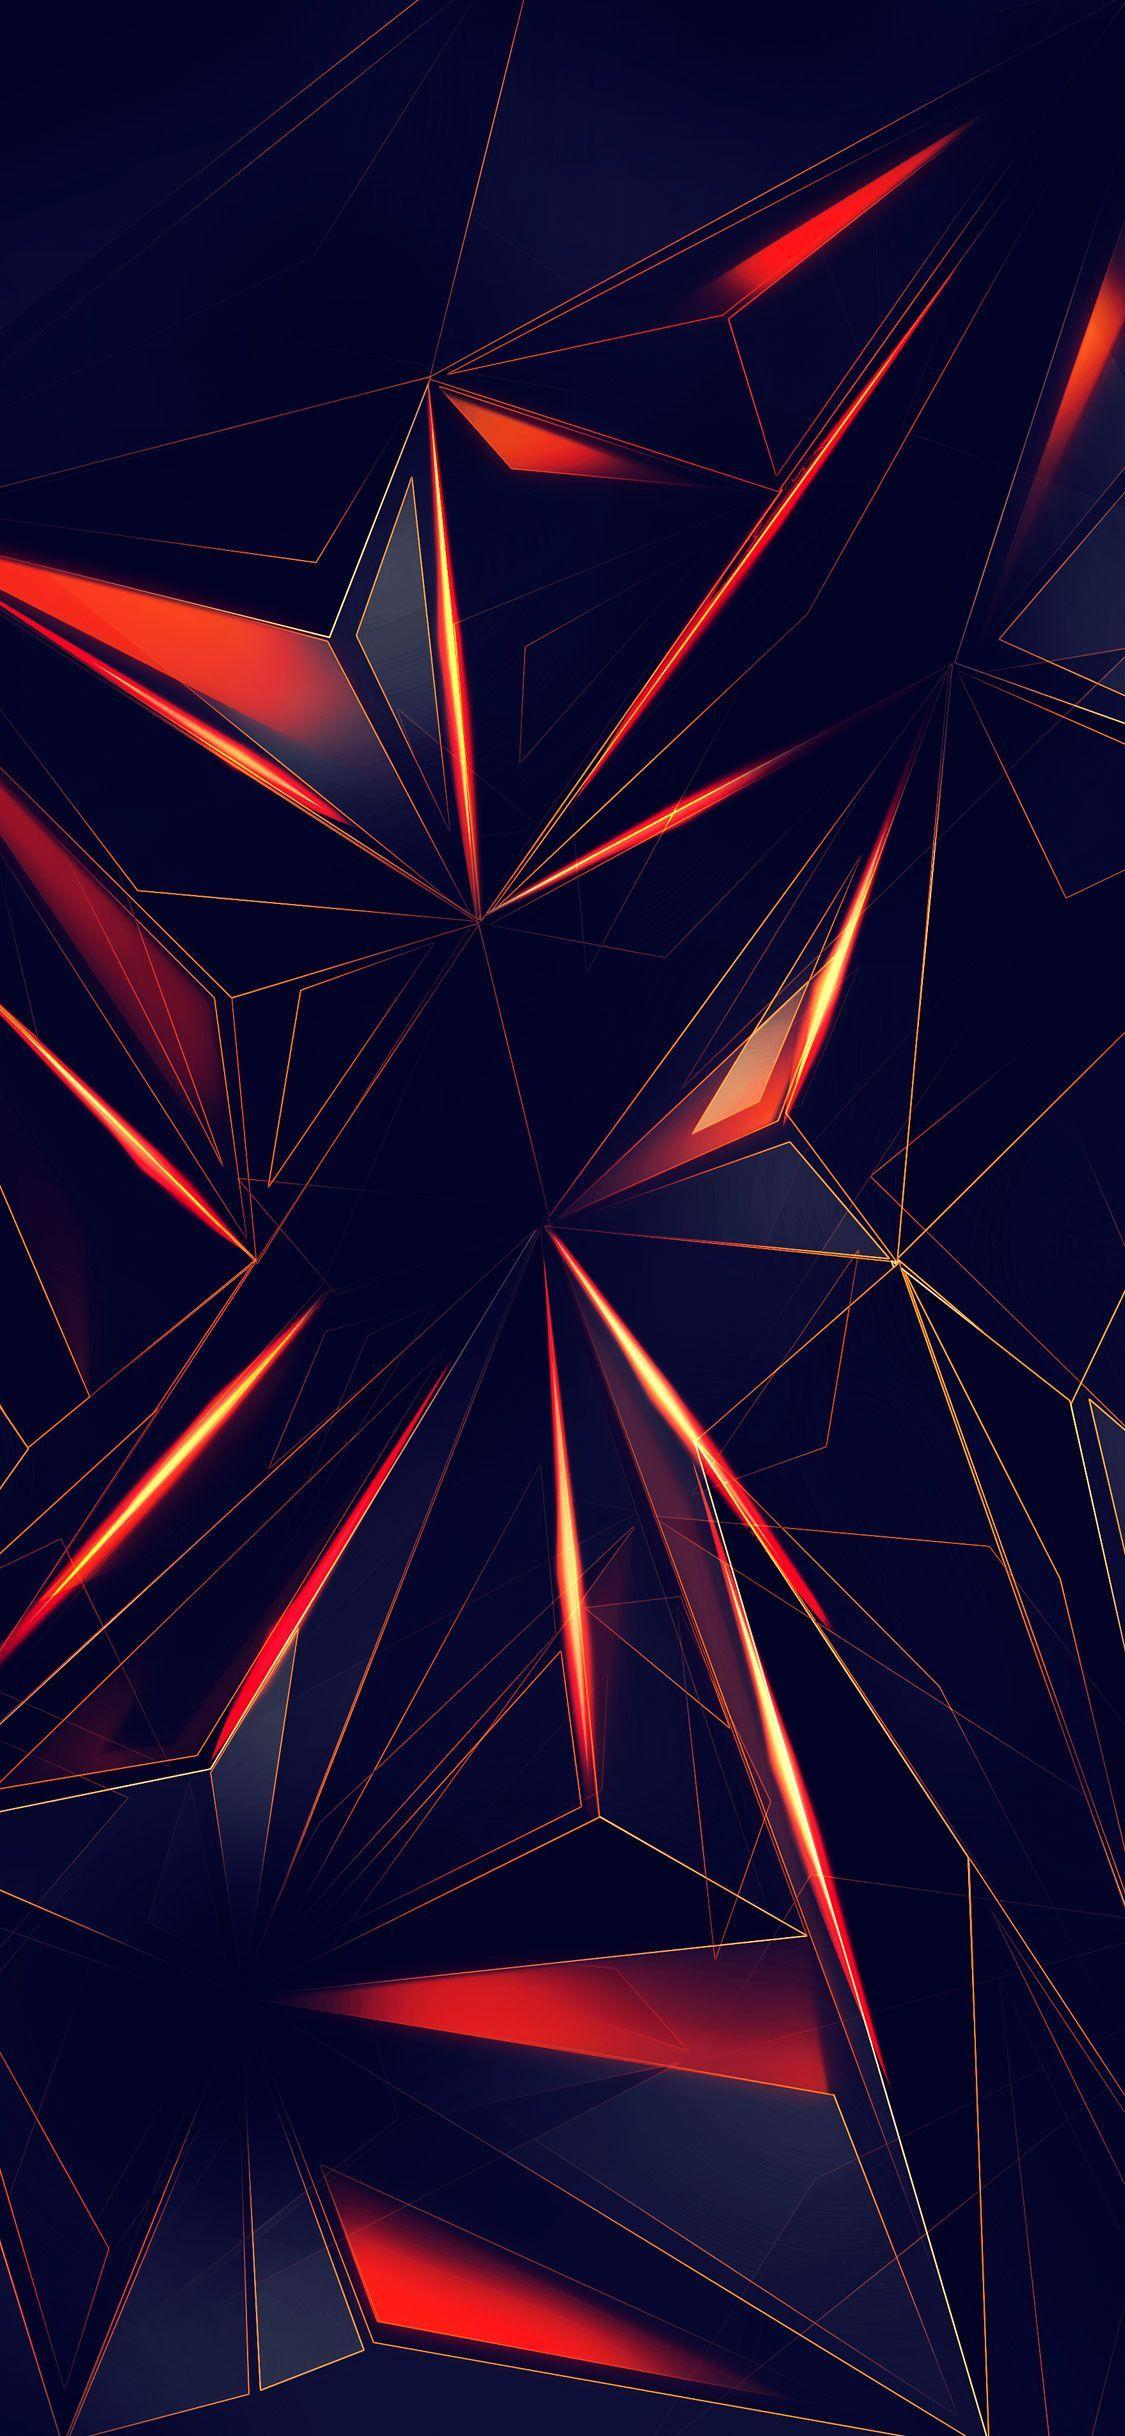 Abstract Iphone 11 Hd Wallpapers Wallpaper Cave